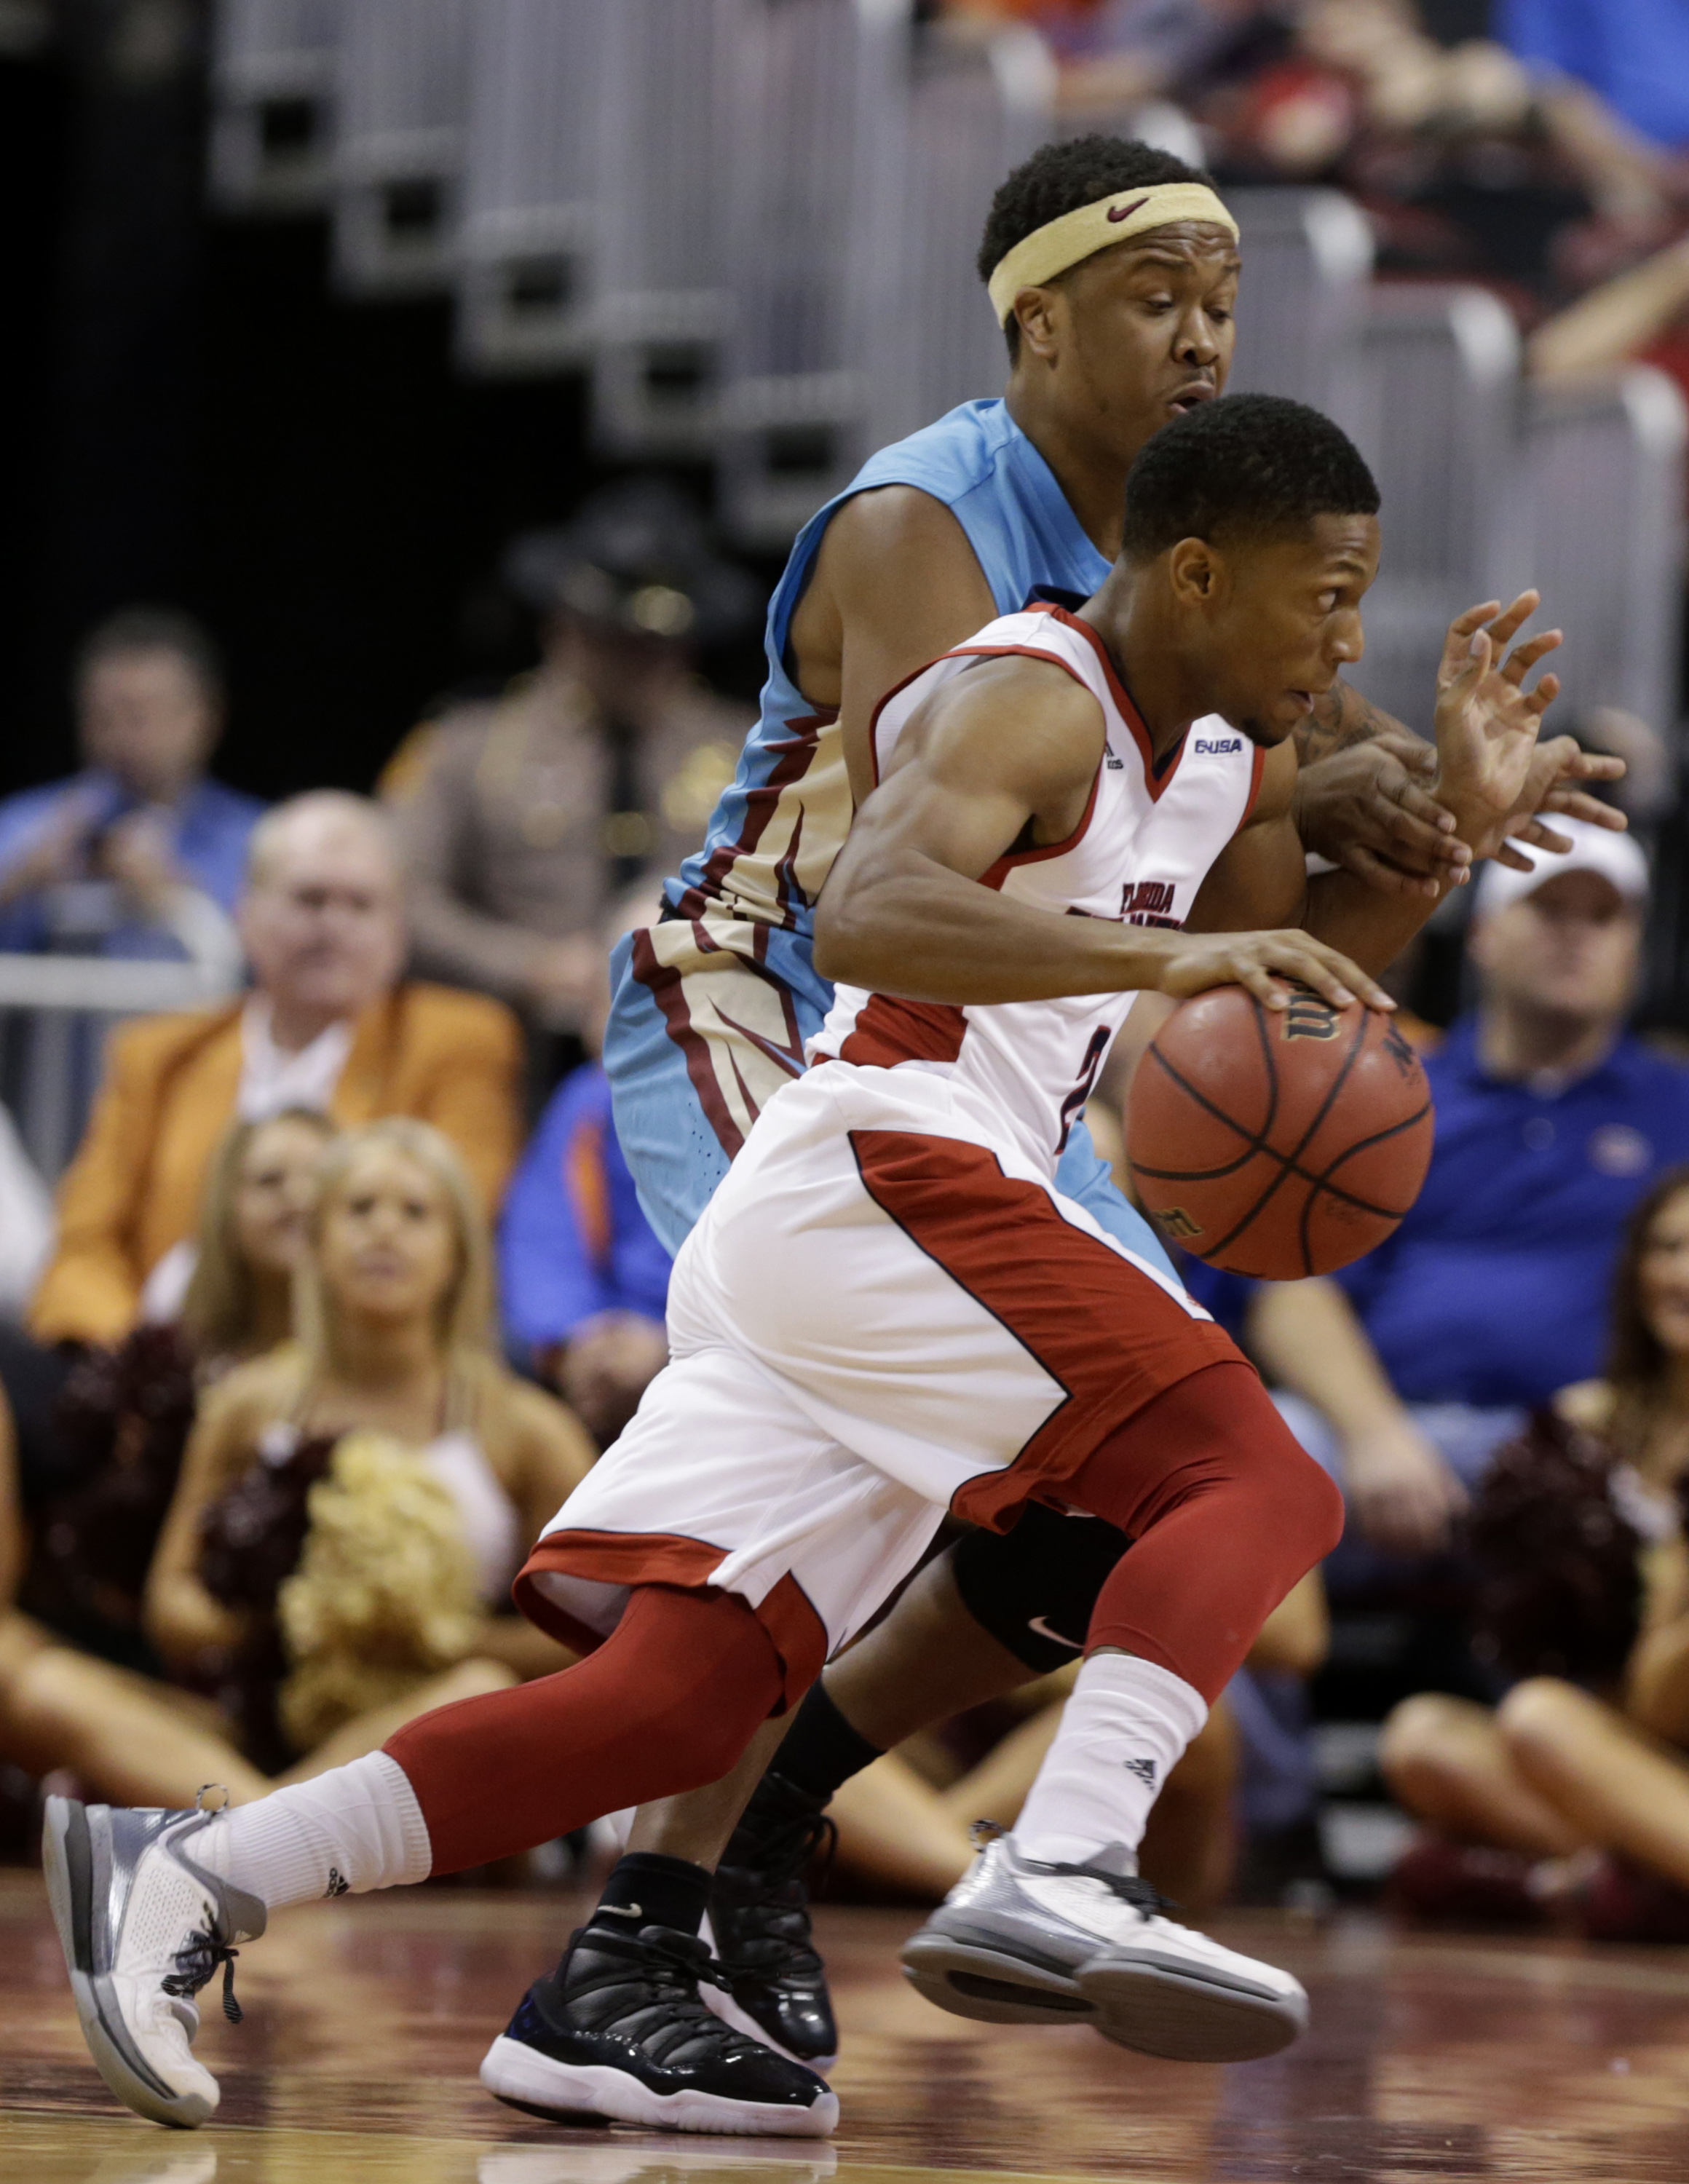 Florida Atlantic's Marquan Botley, right, drives to the basket as Florida State 's Benji Bell, left, defends in the first half of the NCAA college Orange Bowl Basketball Classic, Saturday, Dec. 19, 2015, in Sunrise, Fla. (AP Photo/Lynne Sladky)